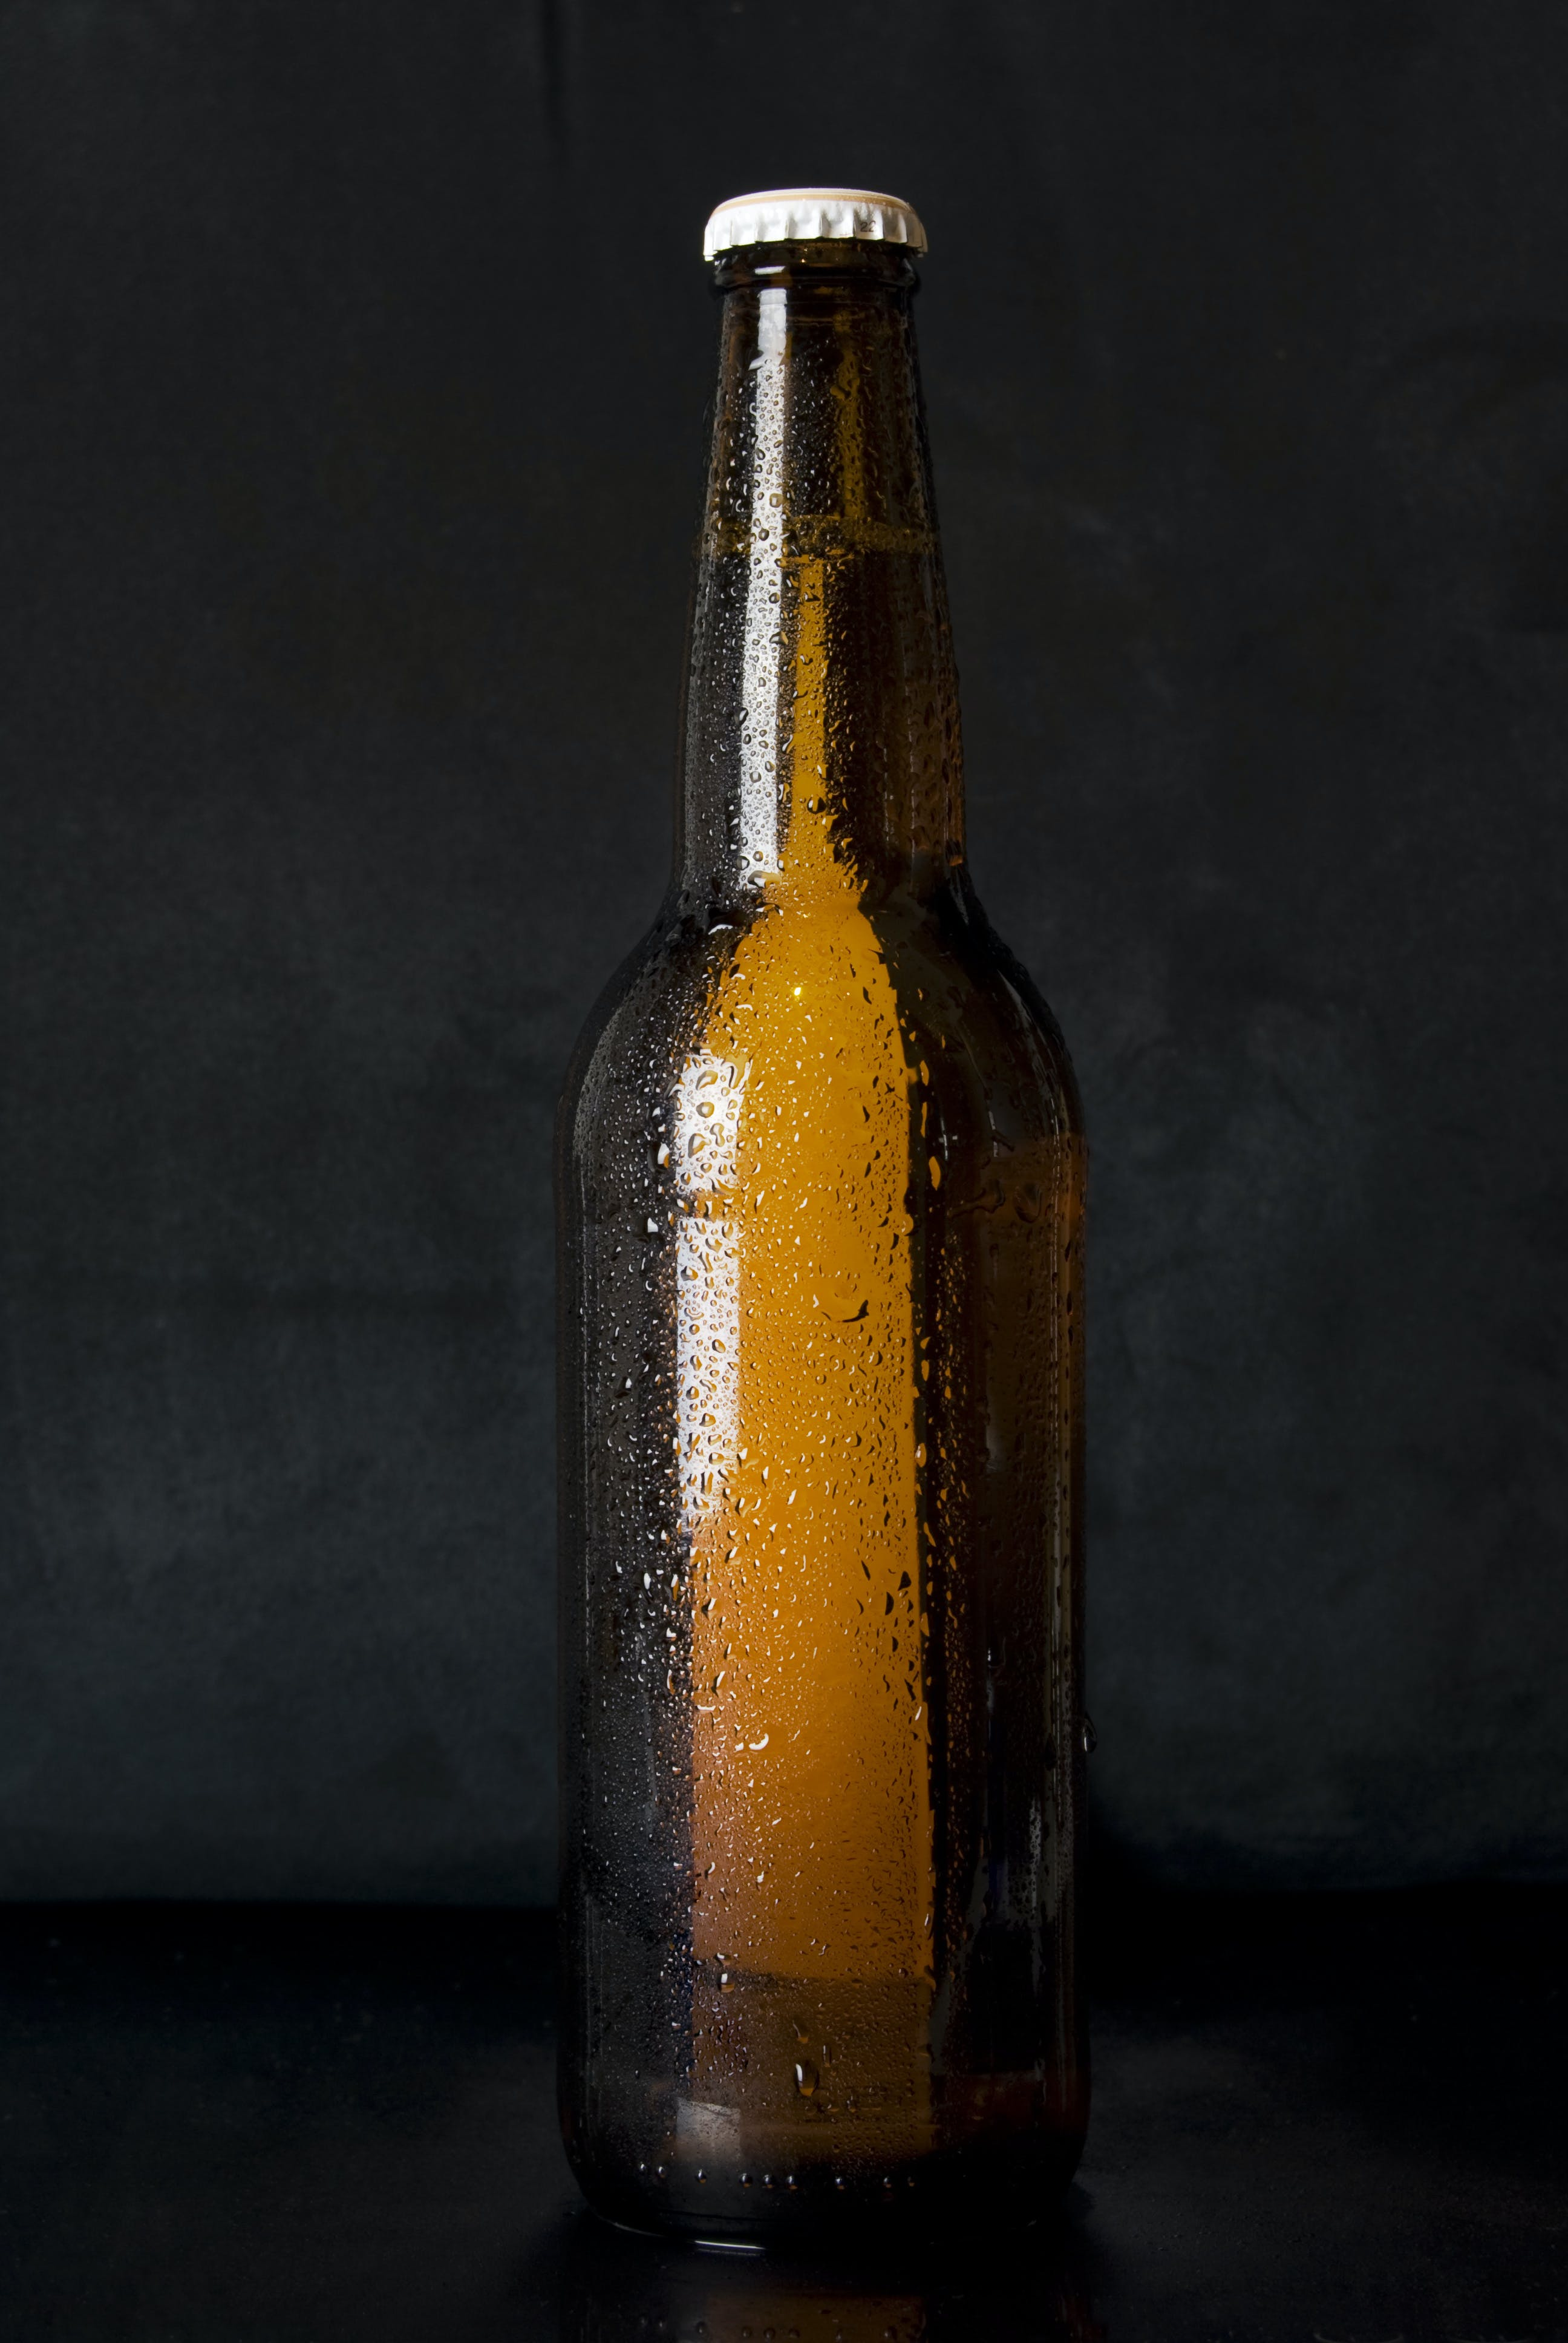 Amber Glass Bottle Standing on Black Surface